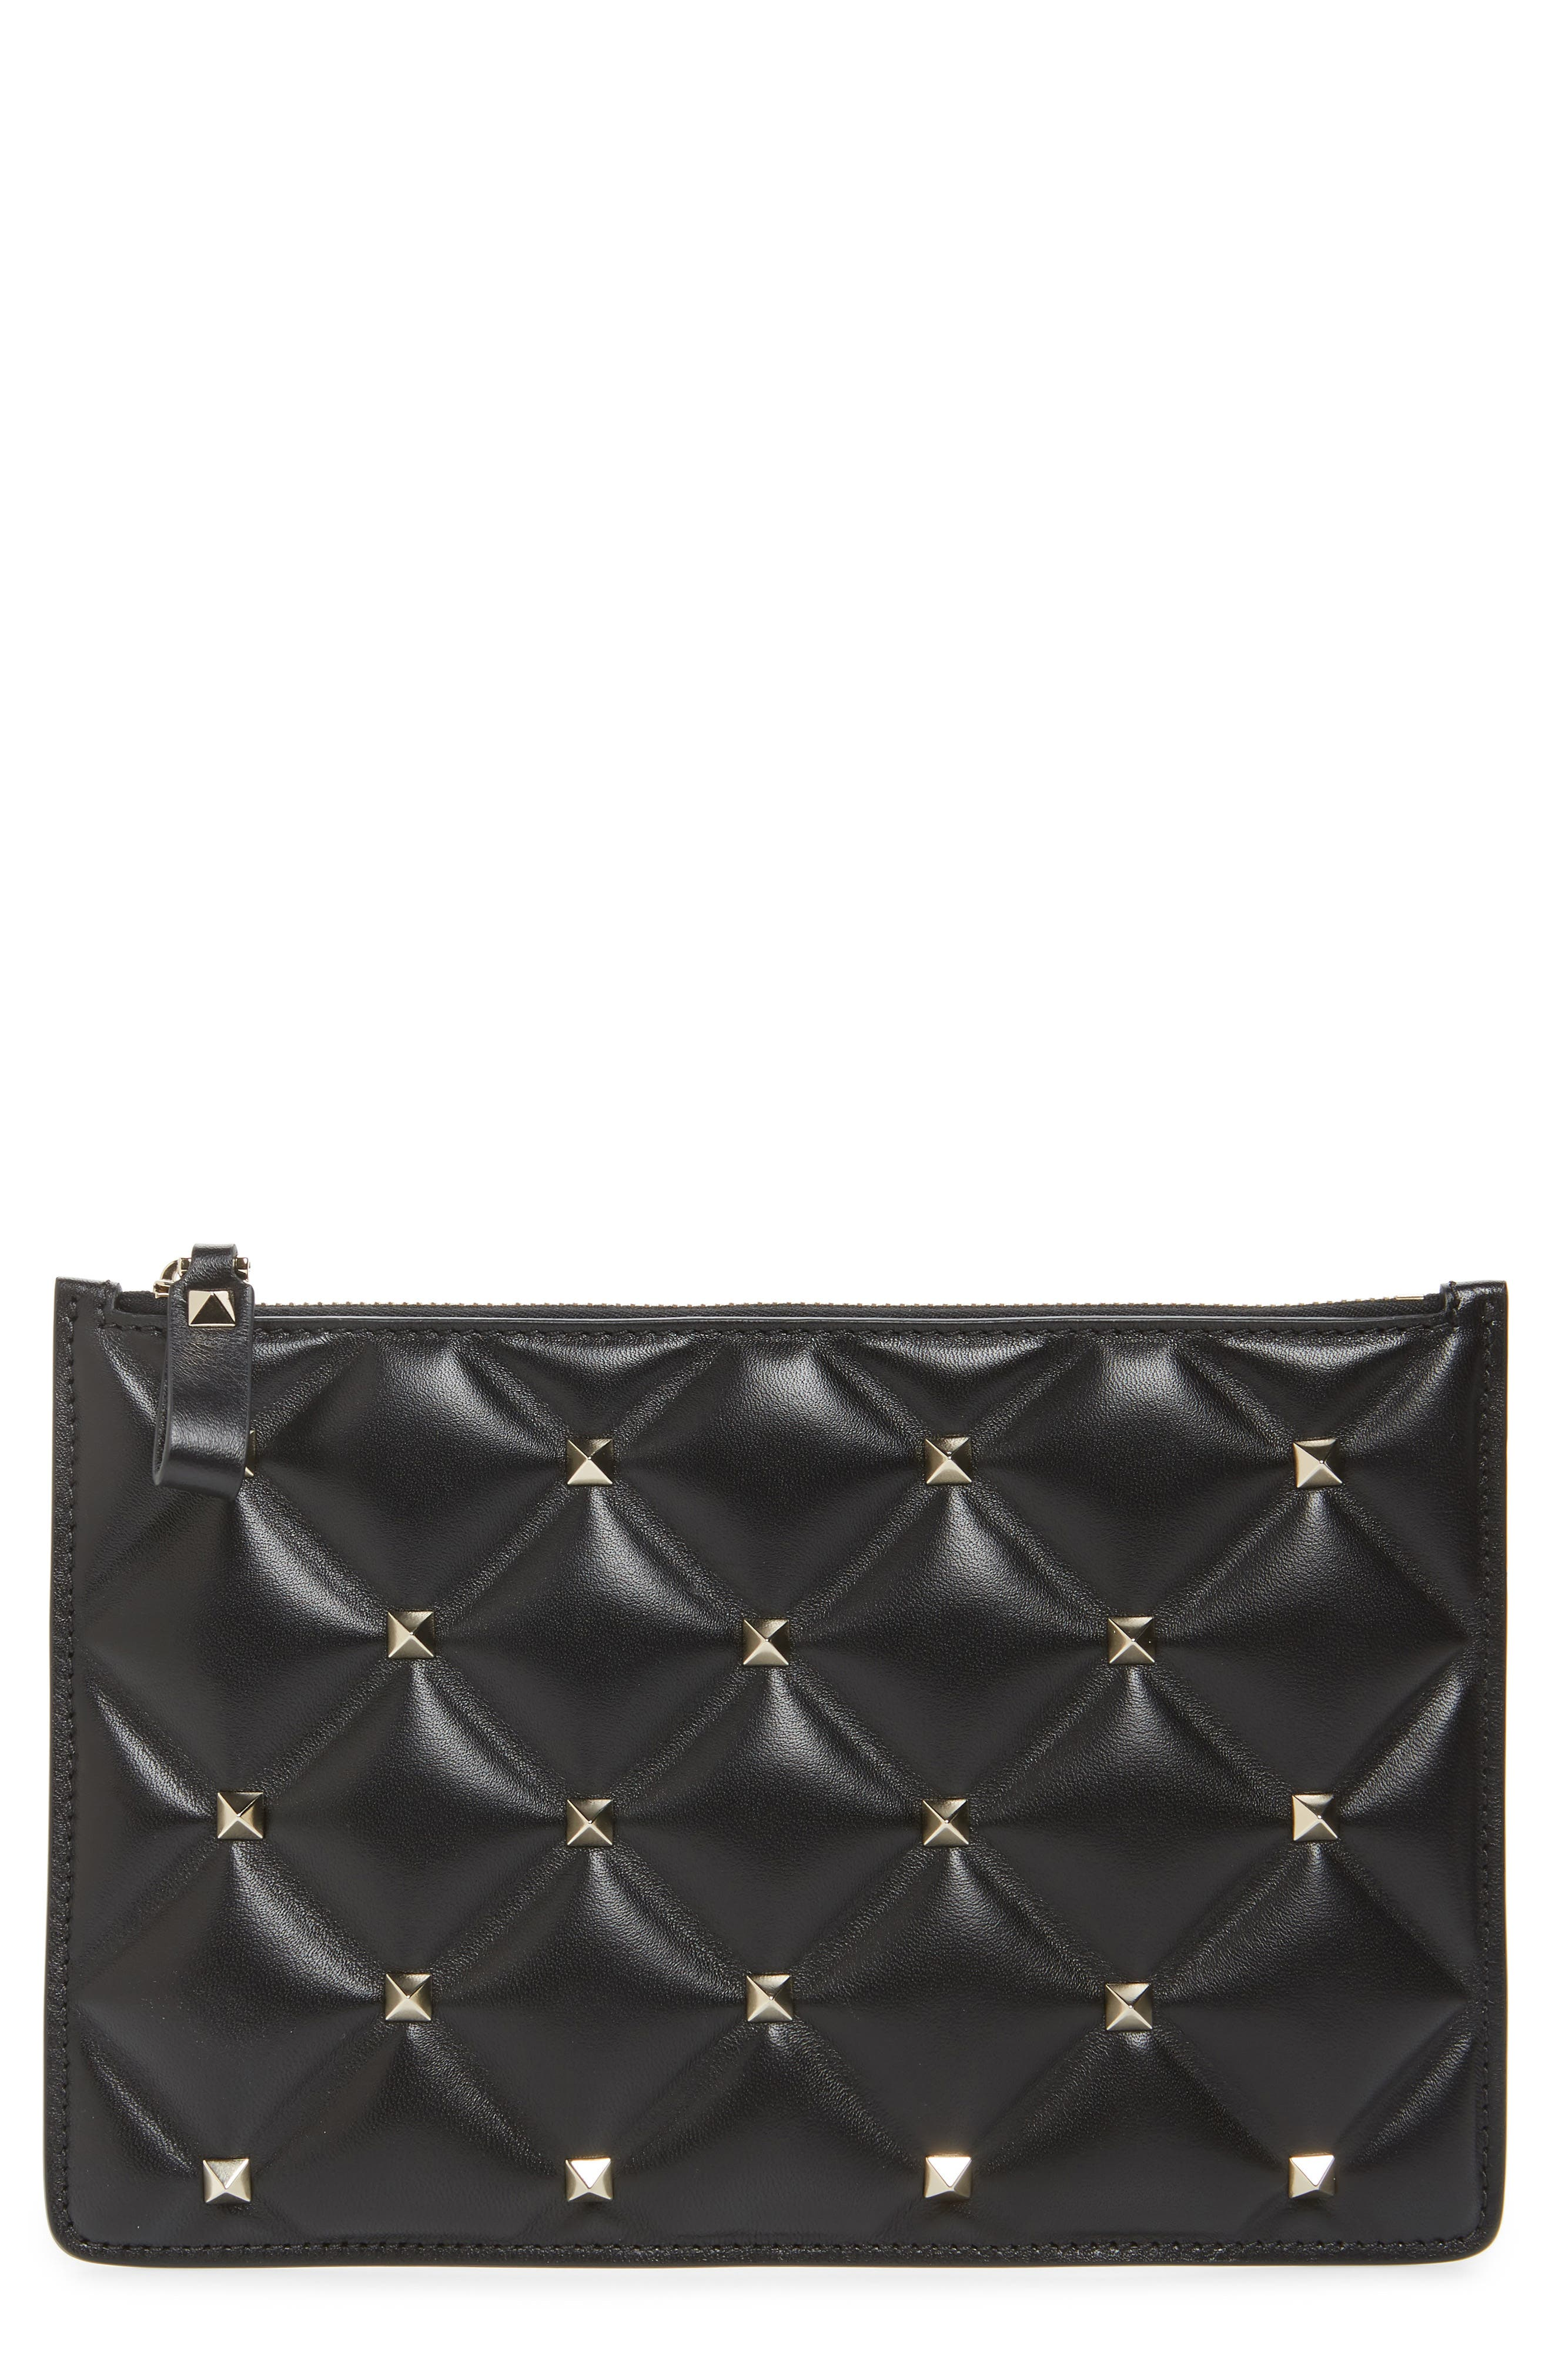 Medium Candystud Leather Pouch,                         Main,                         color, NERO